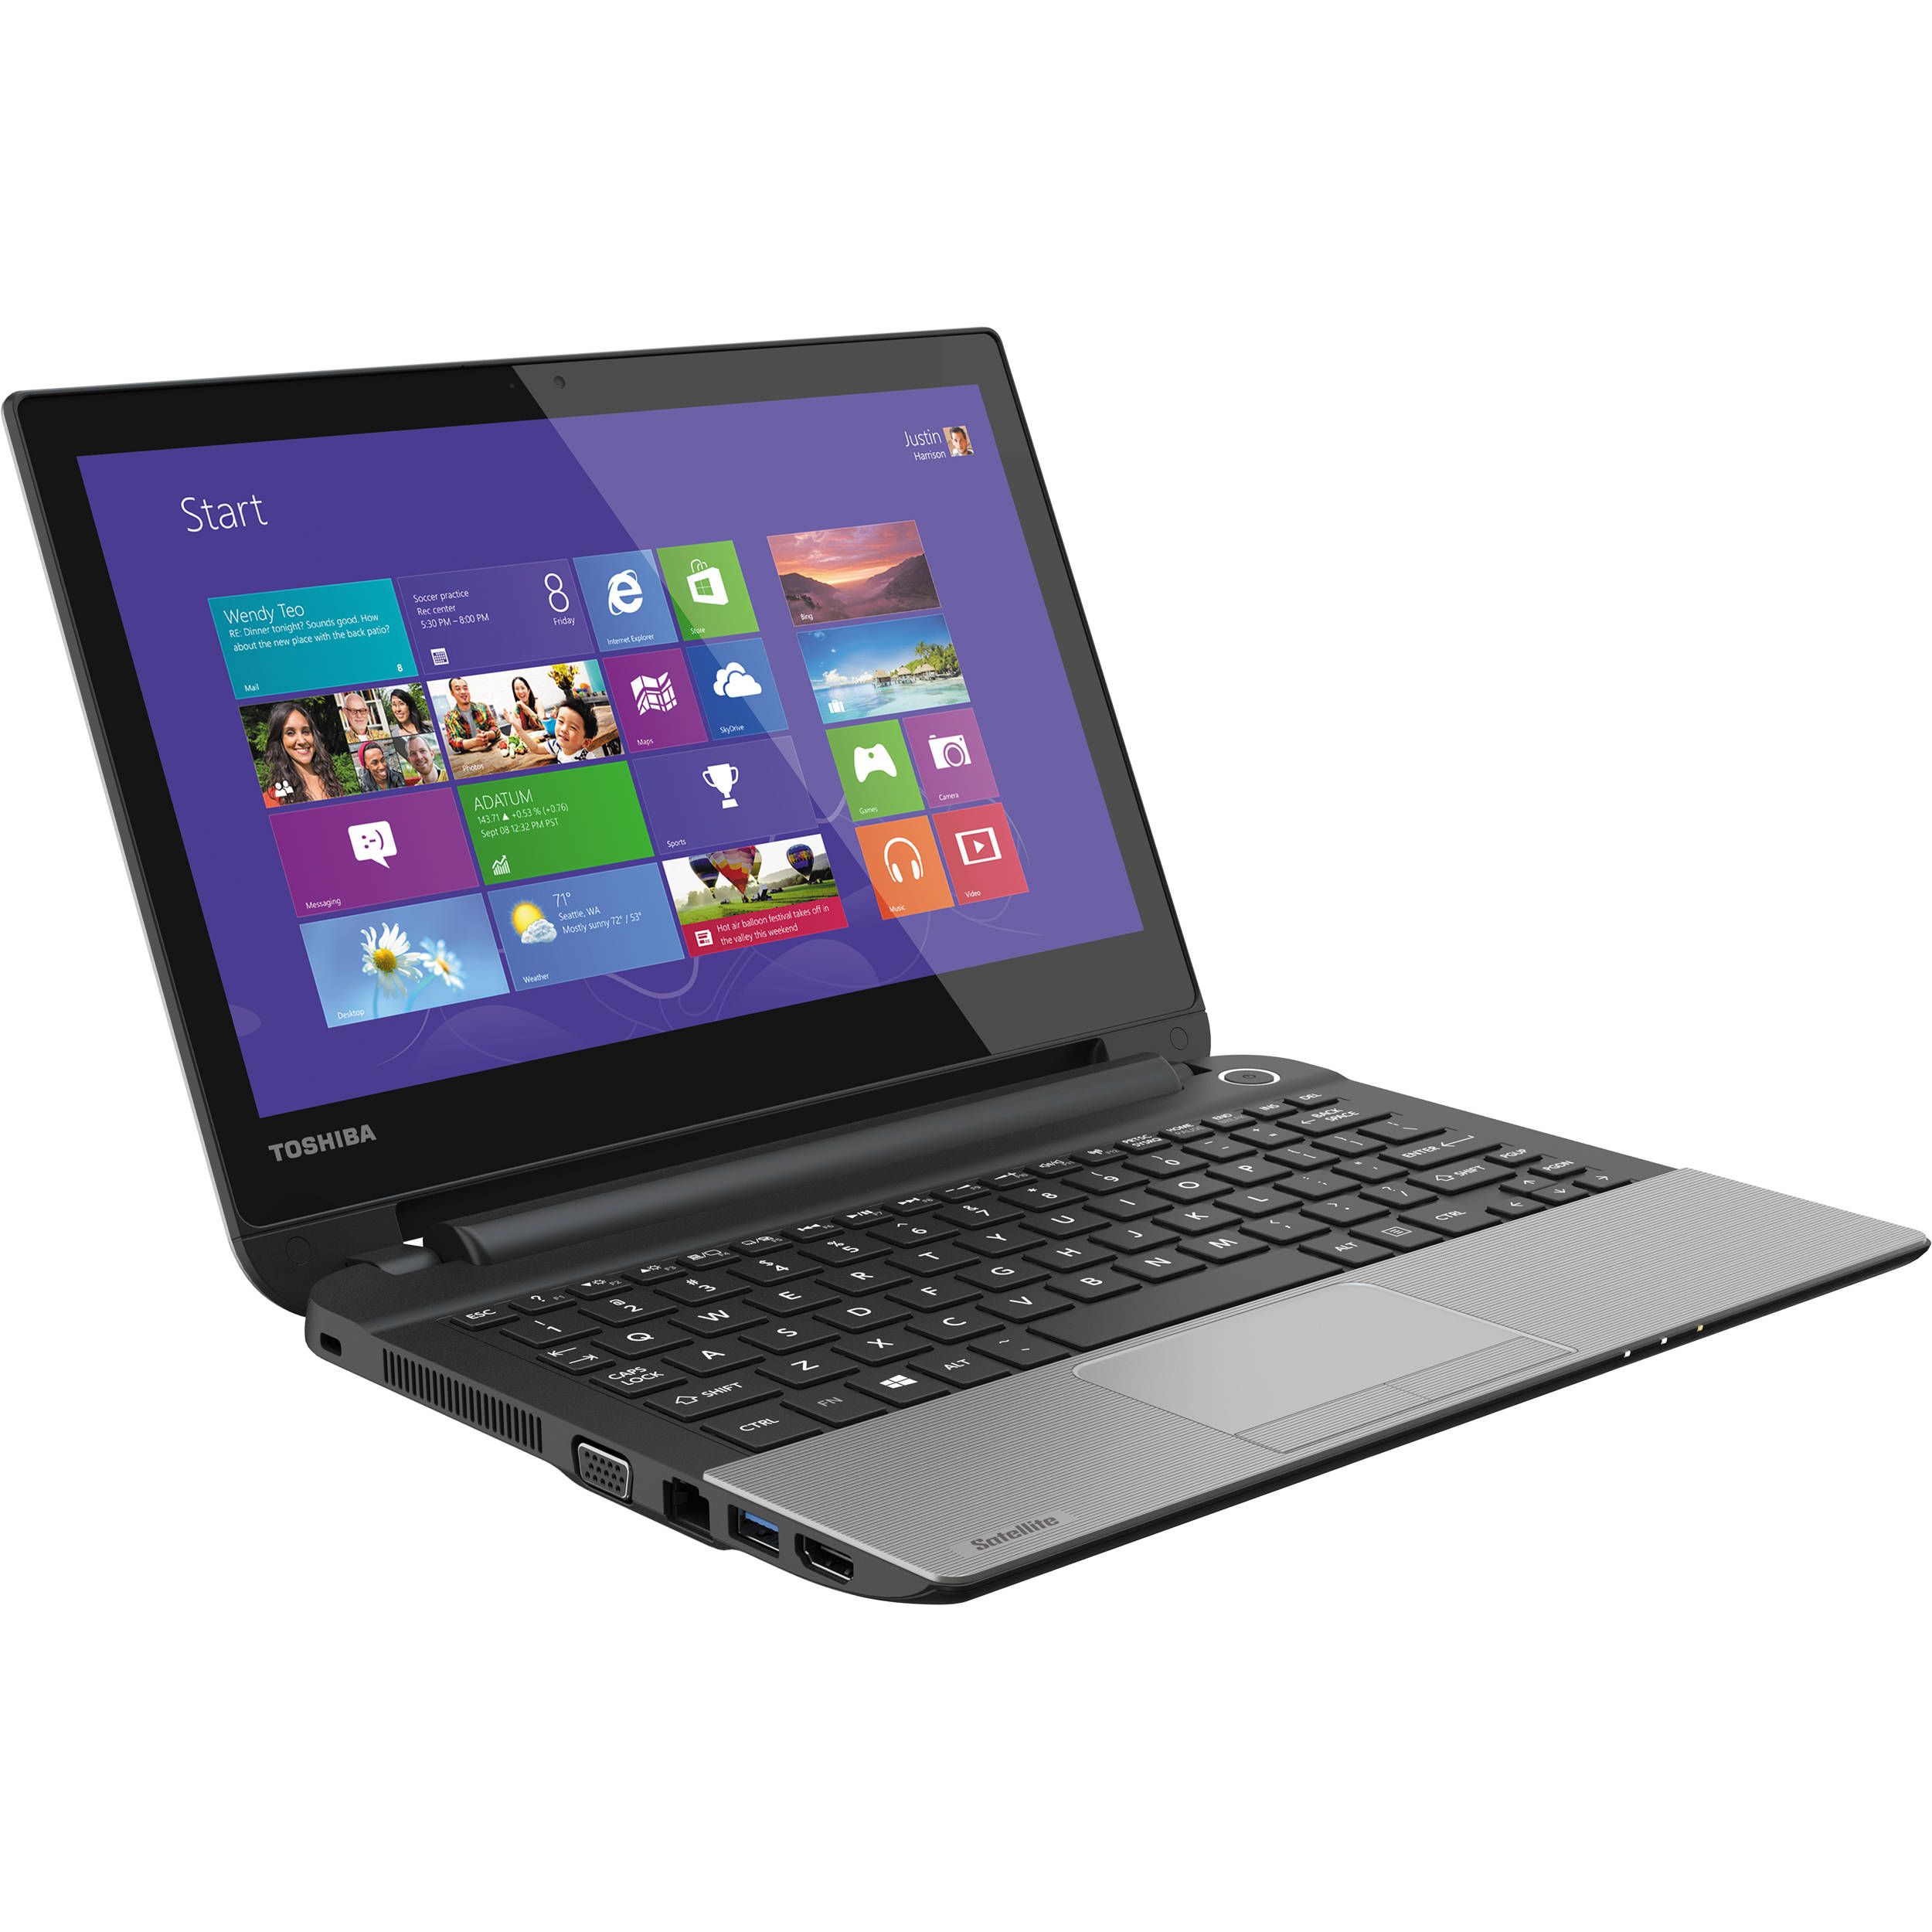 Toshiba Satellite NB15t Drivers (2019)